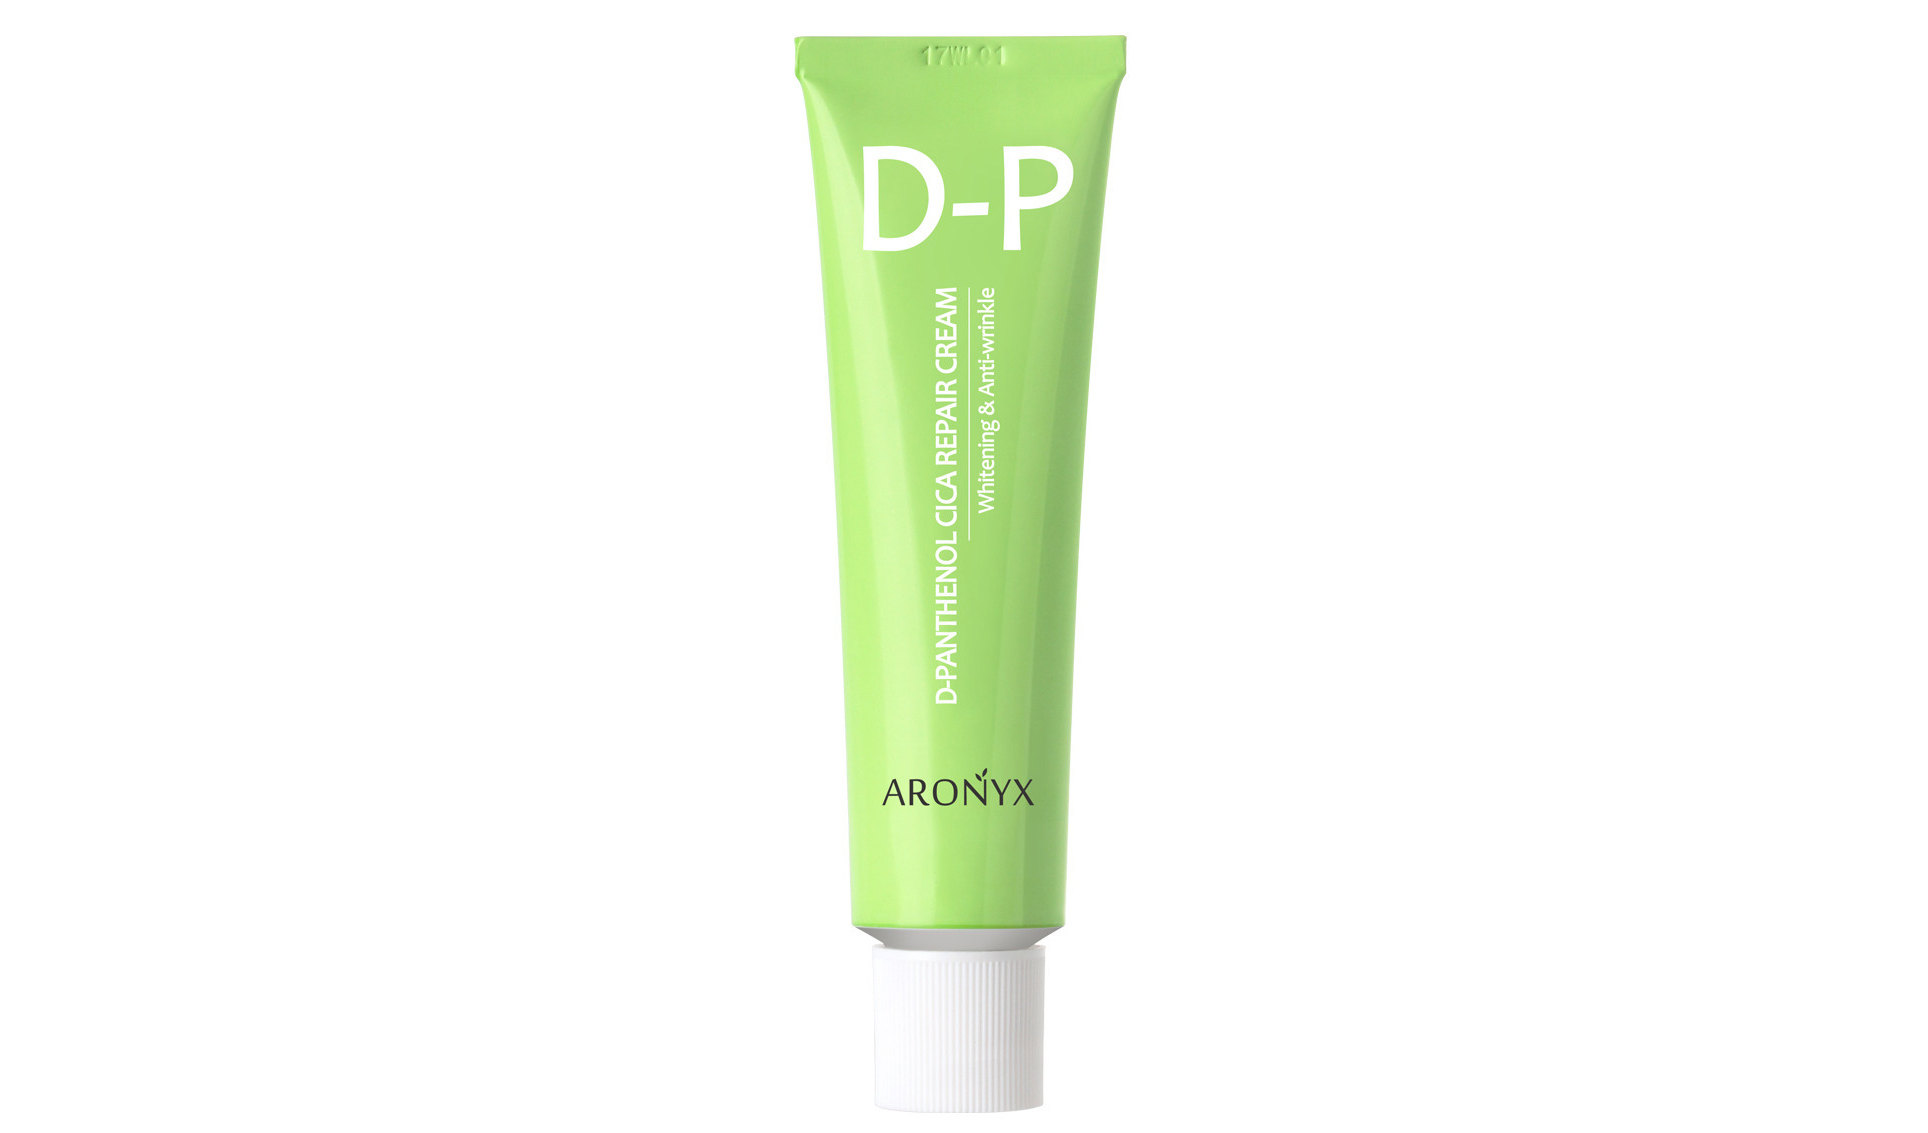 aronyx d panthenol cica repair cream 1